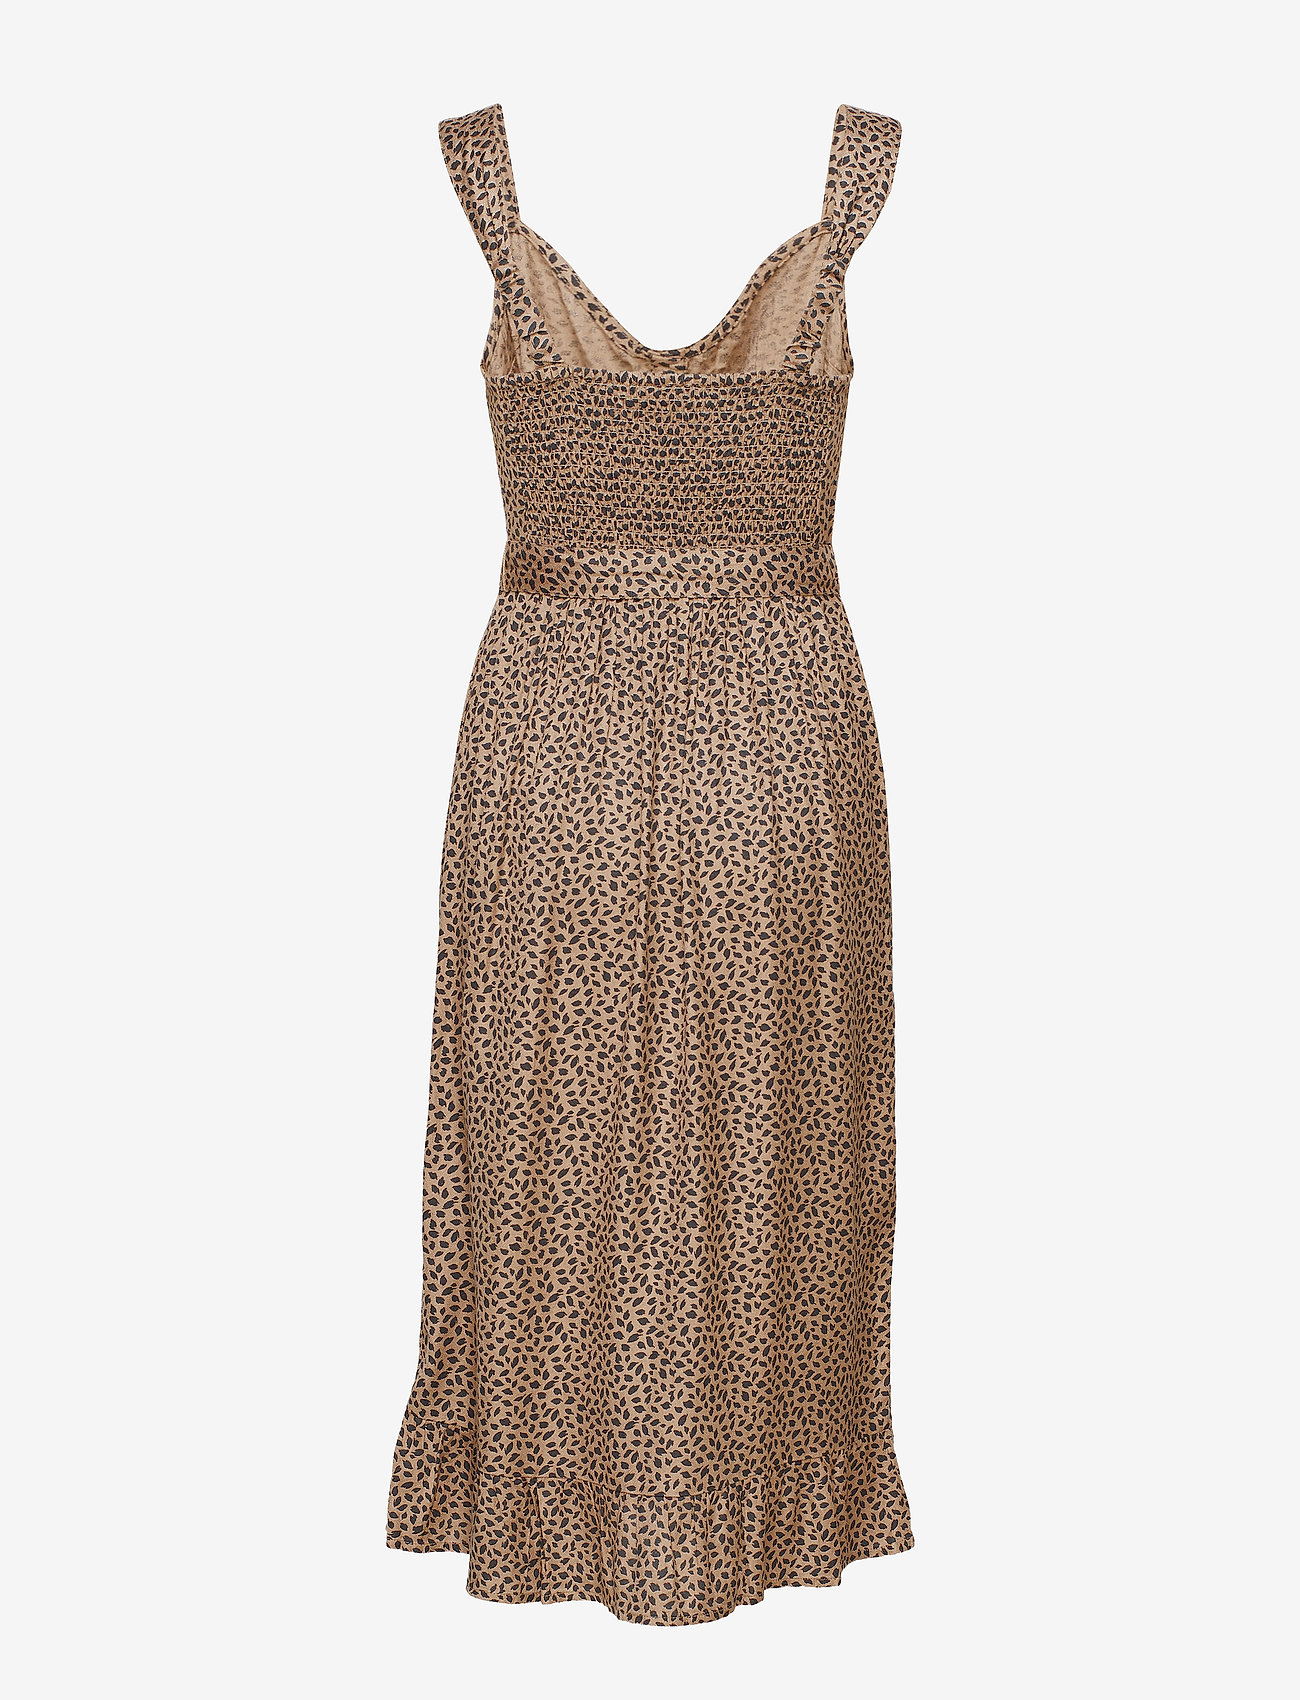 Ruffle Midi (Light Brown Print) (666.75 kr) - Abercrombie & Fitch